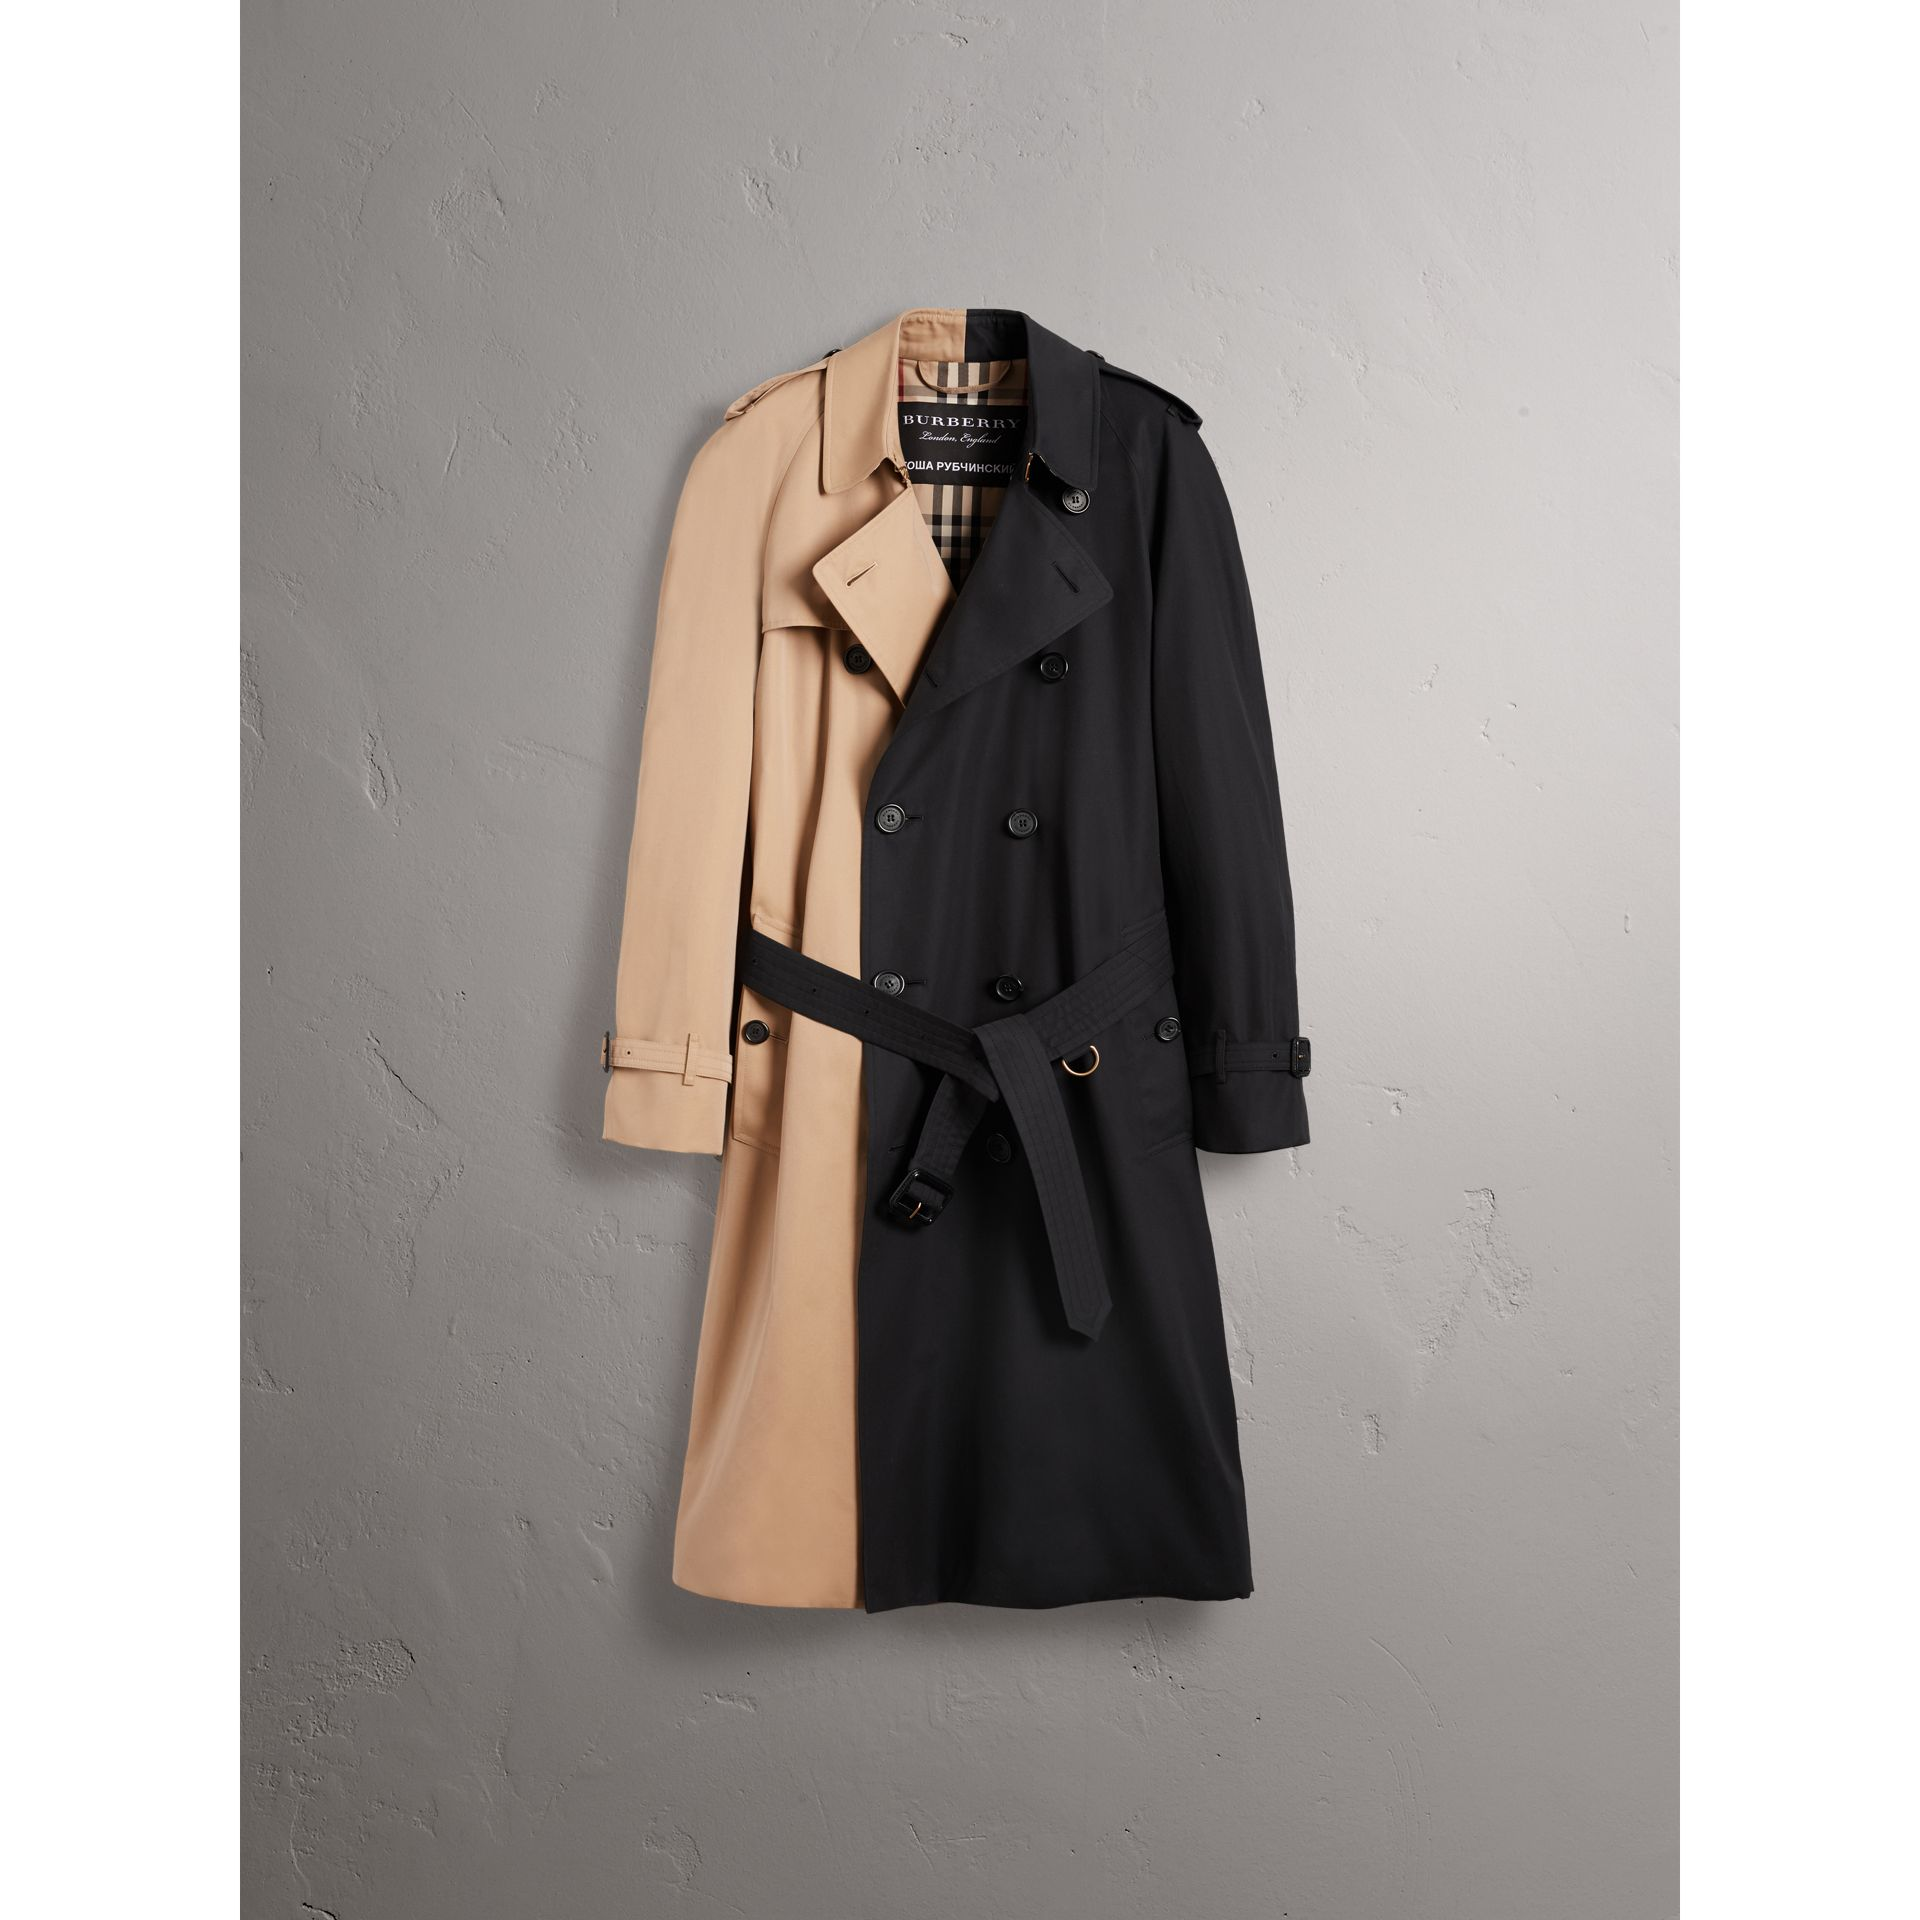 Gosha x Burberry Two-tone Trench Coat in Honey | Burberry - gallery image 4